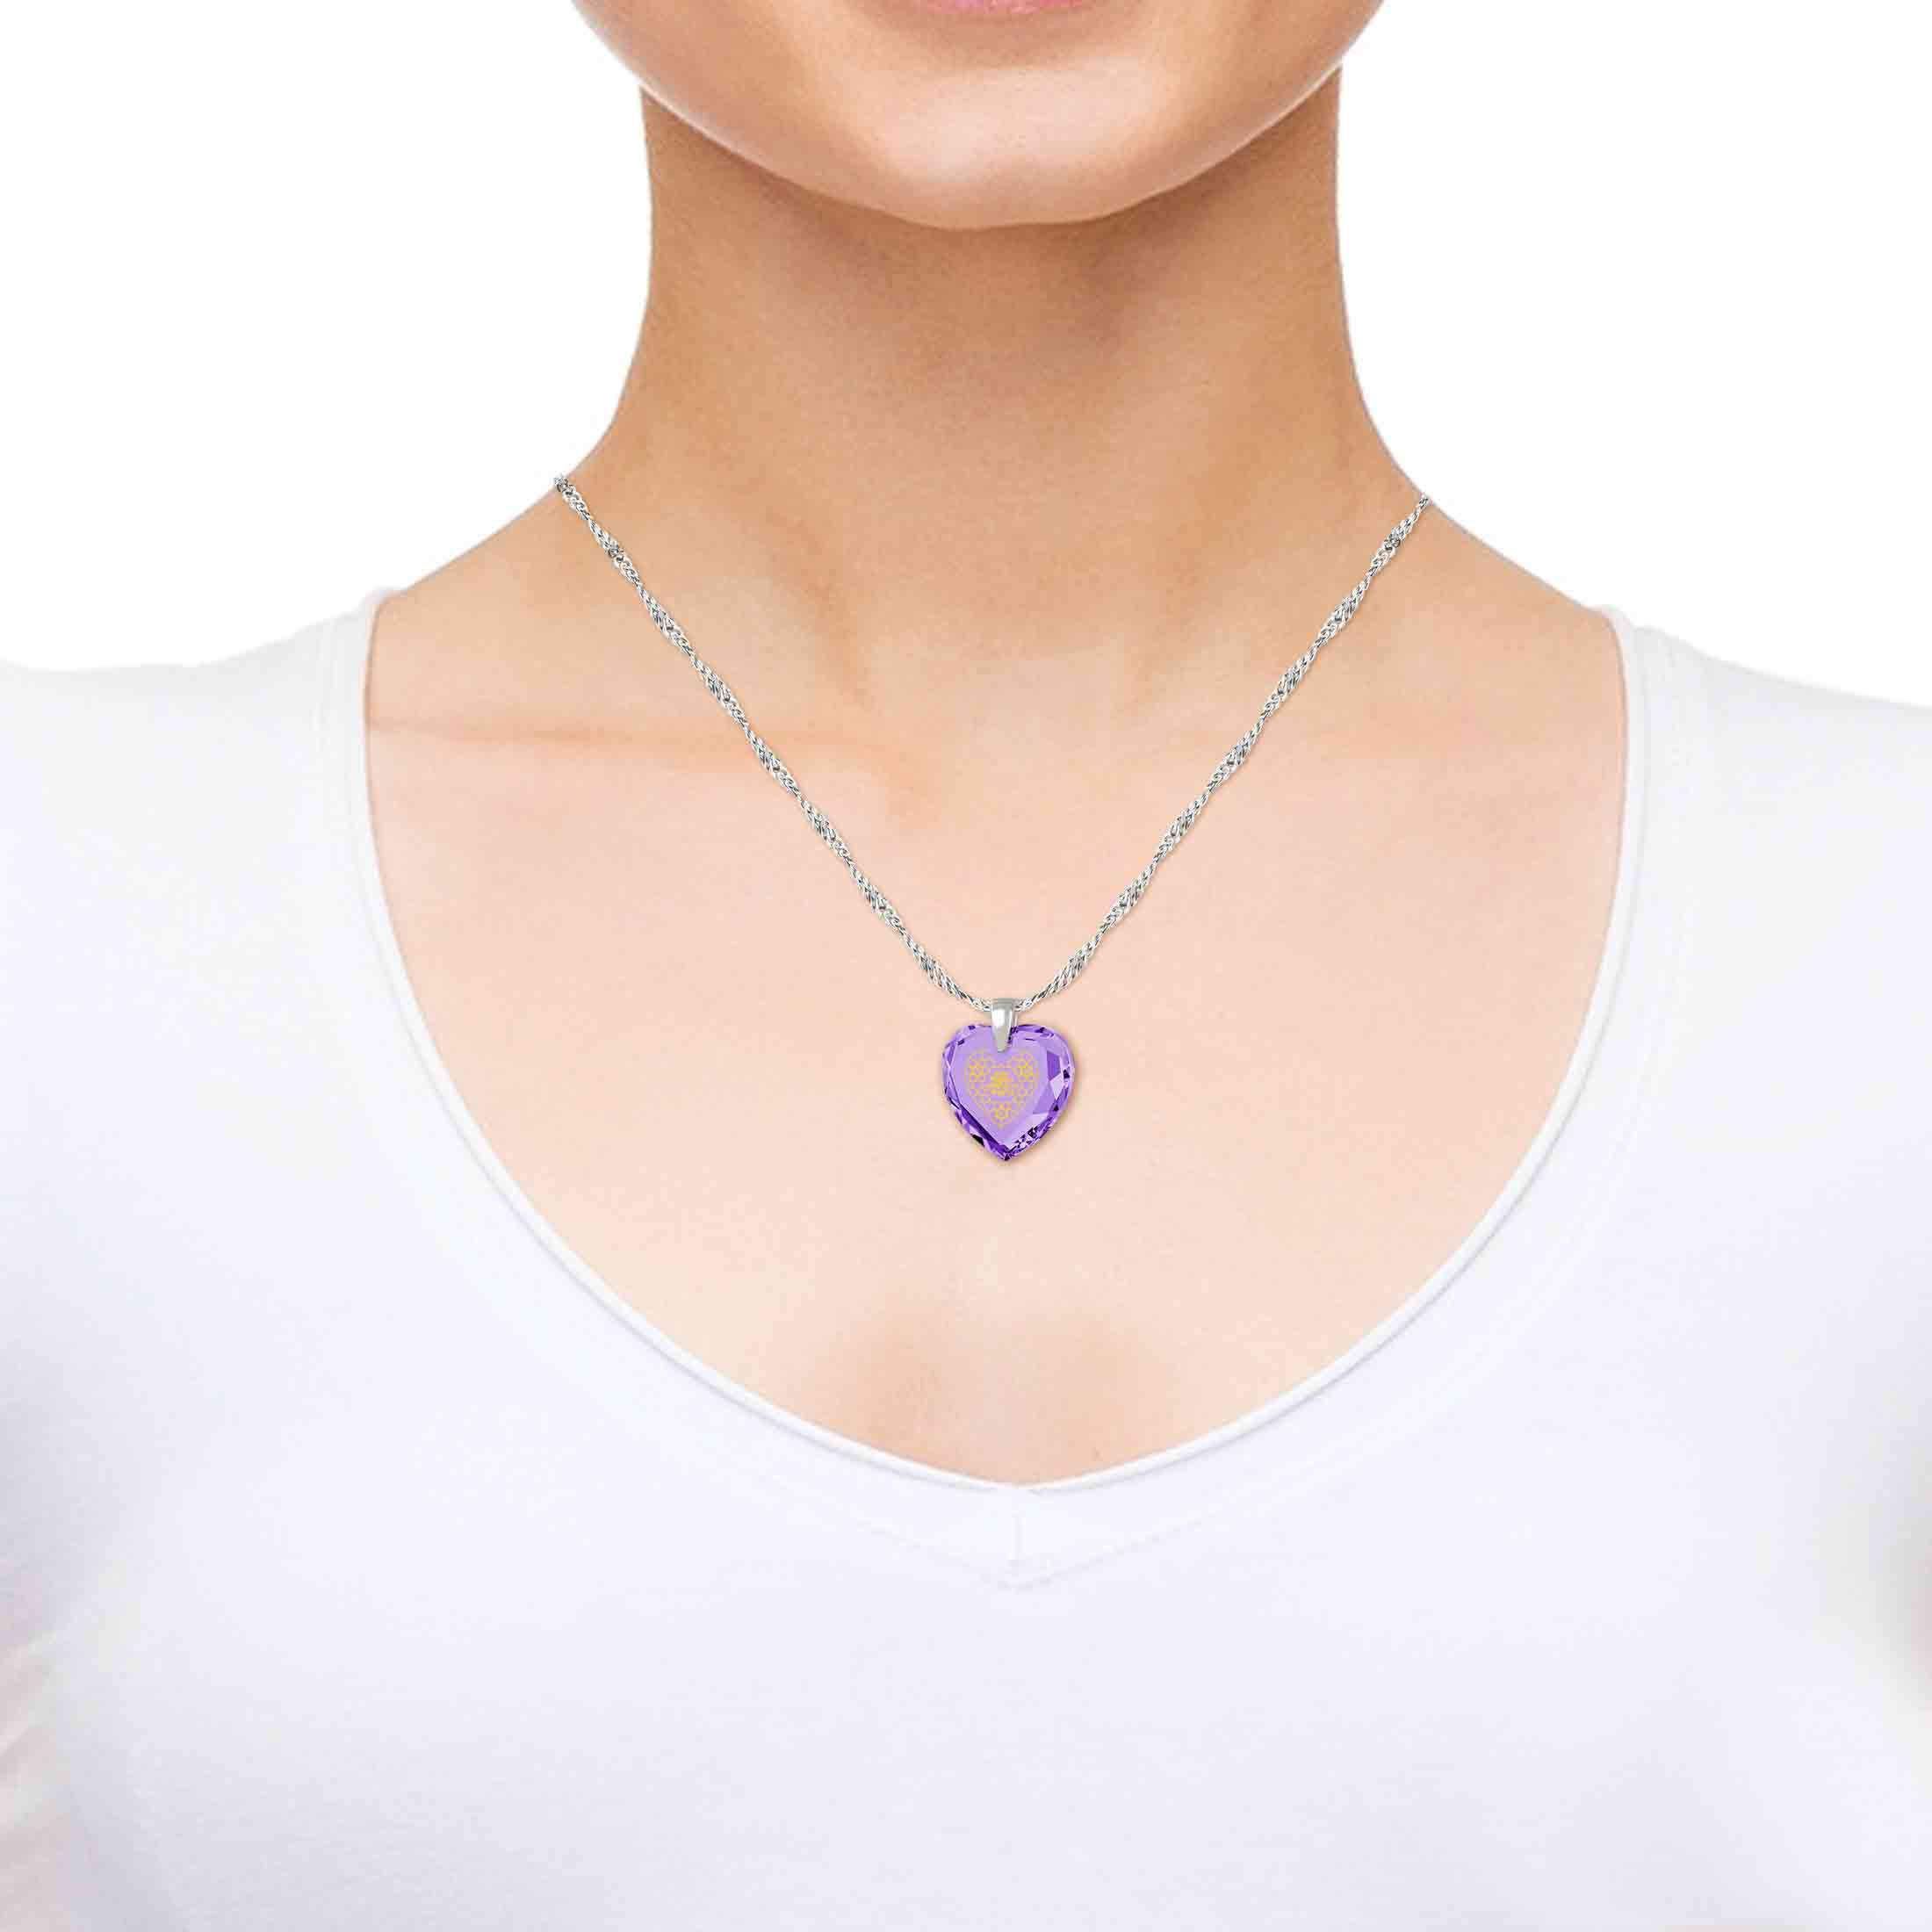 Shema Necklace with Purple Stone Pendant, Nano Jewelry